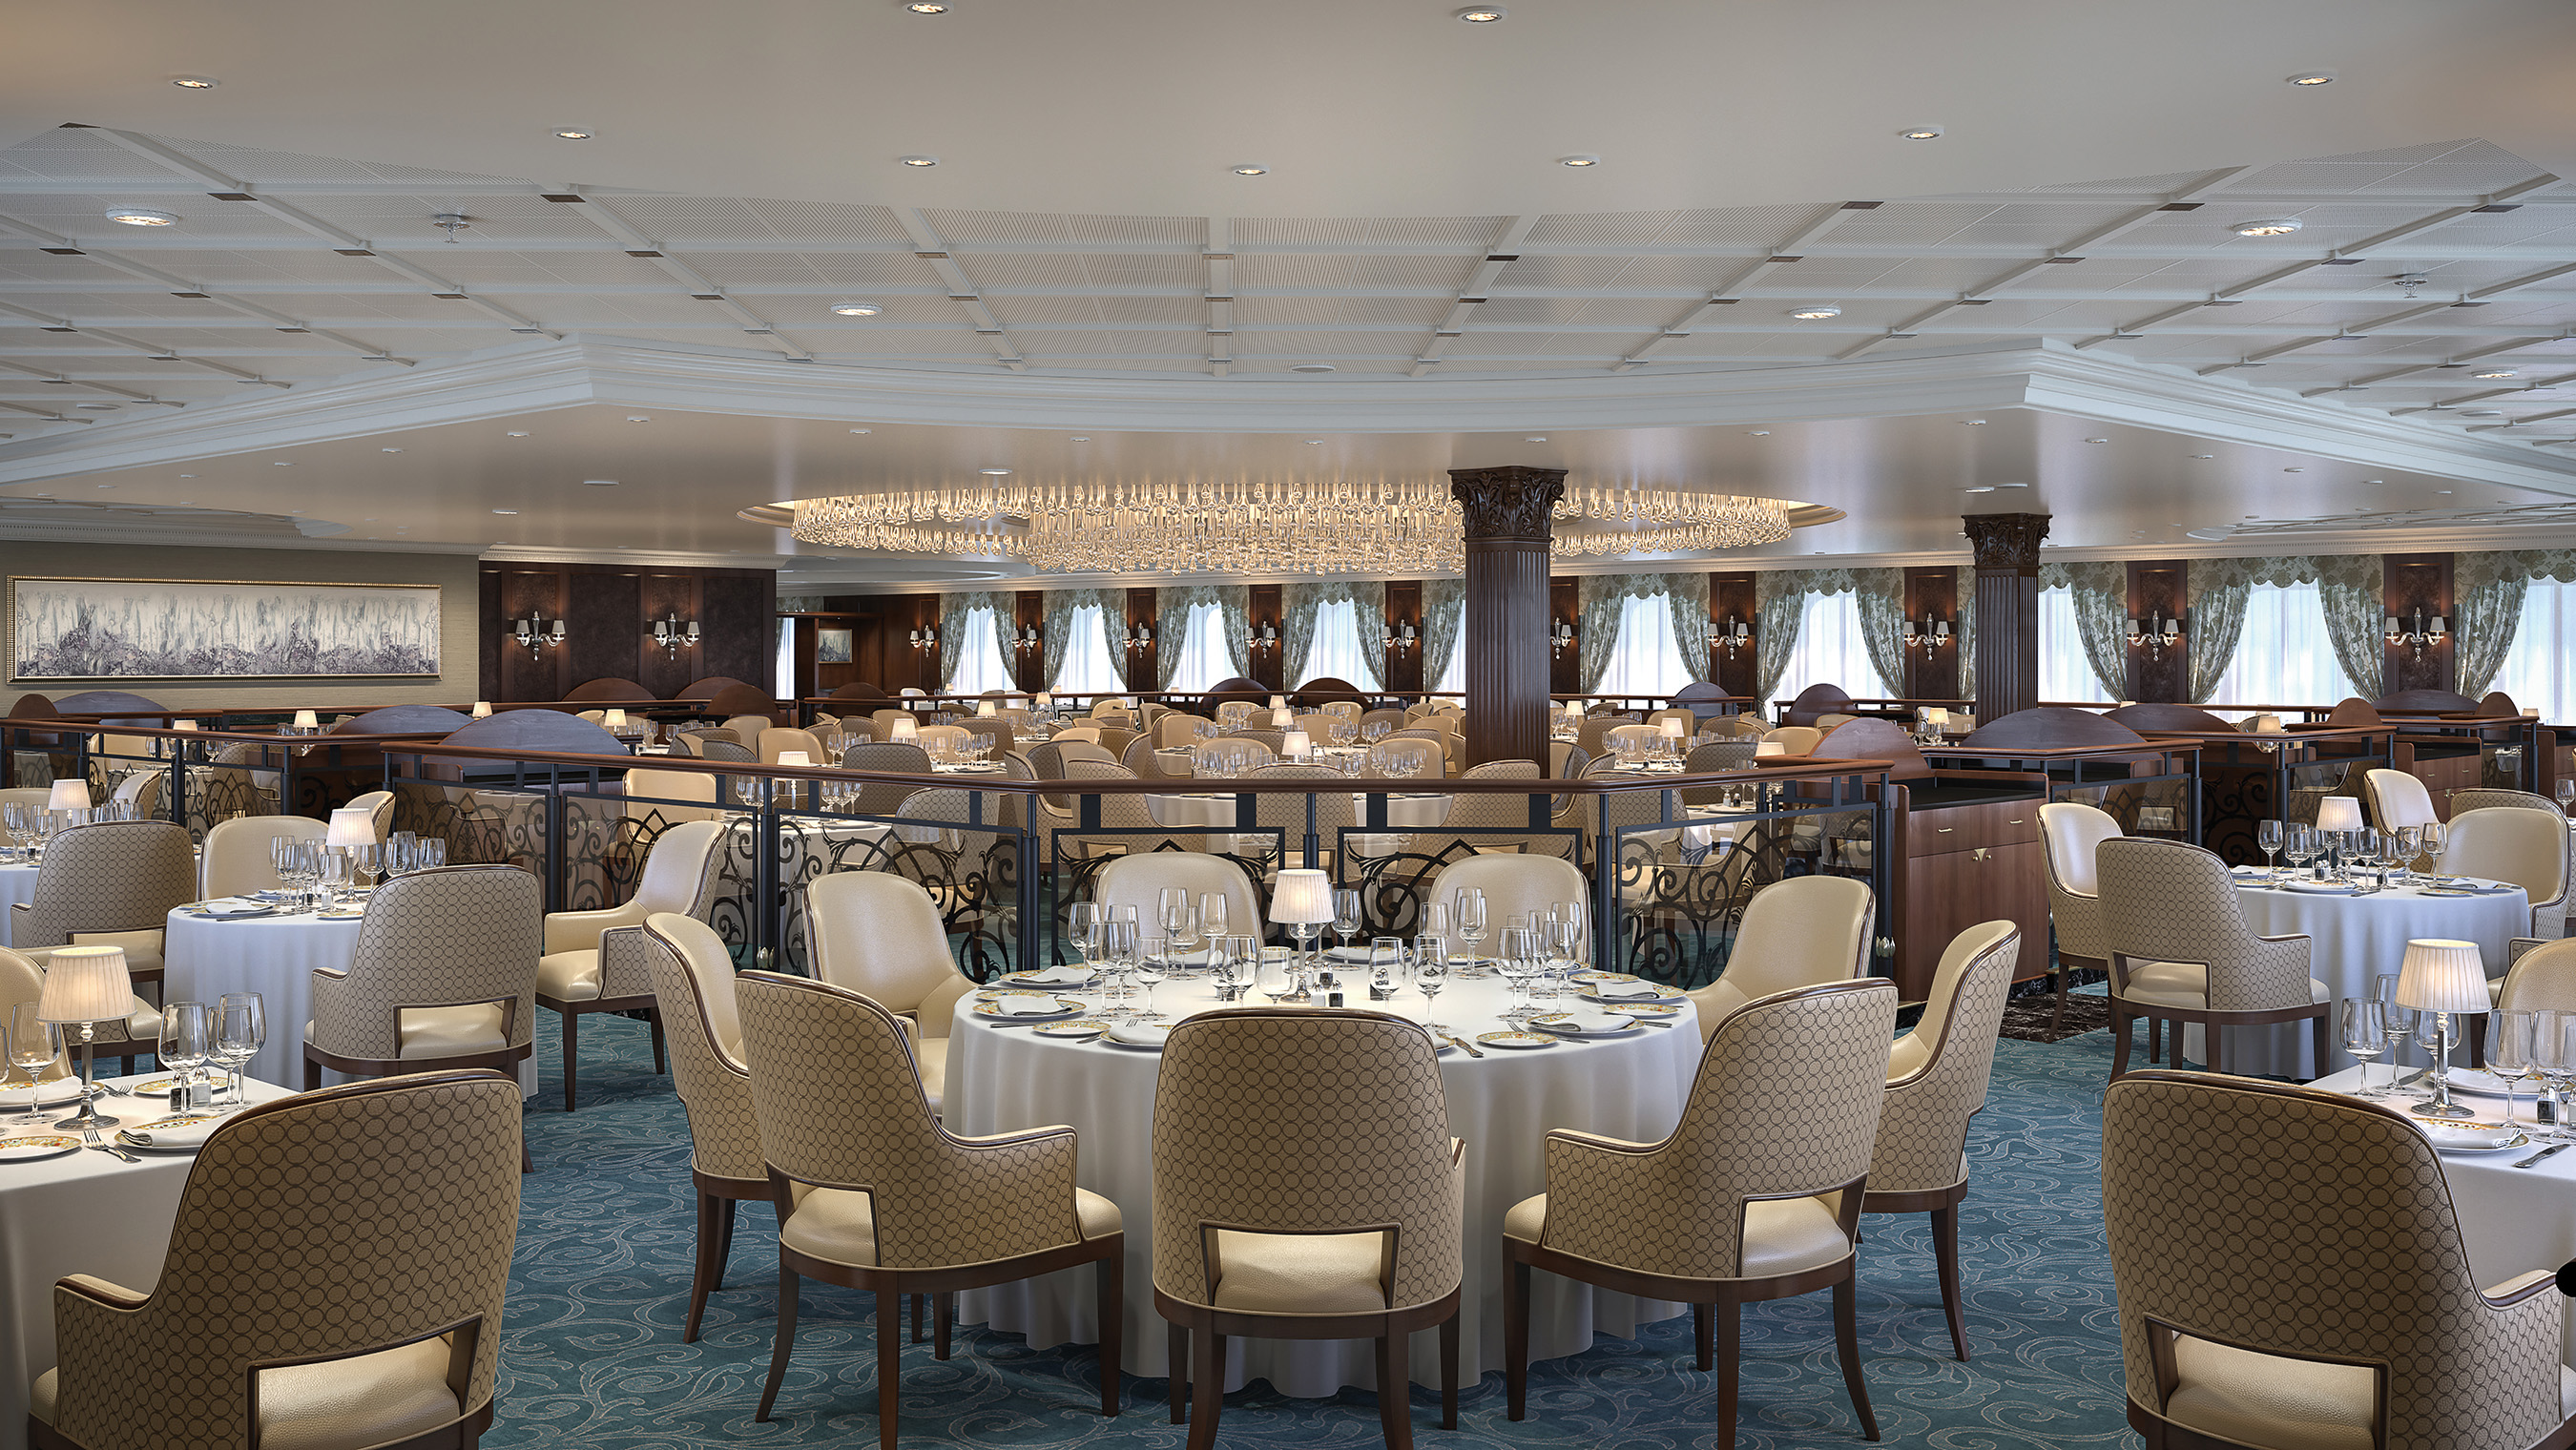 The Grand Dining Room of the reimagined Regatta-Class ships